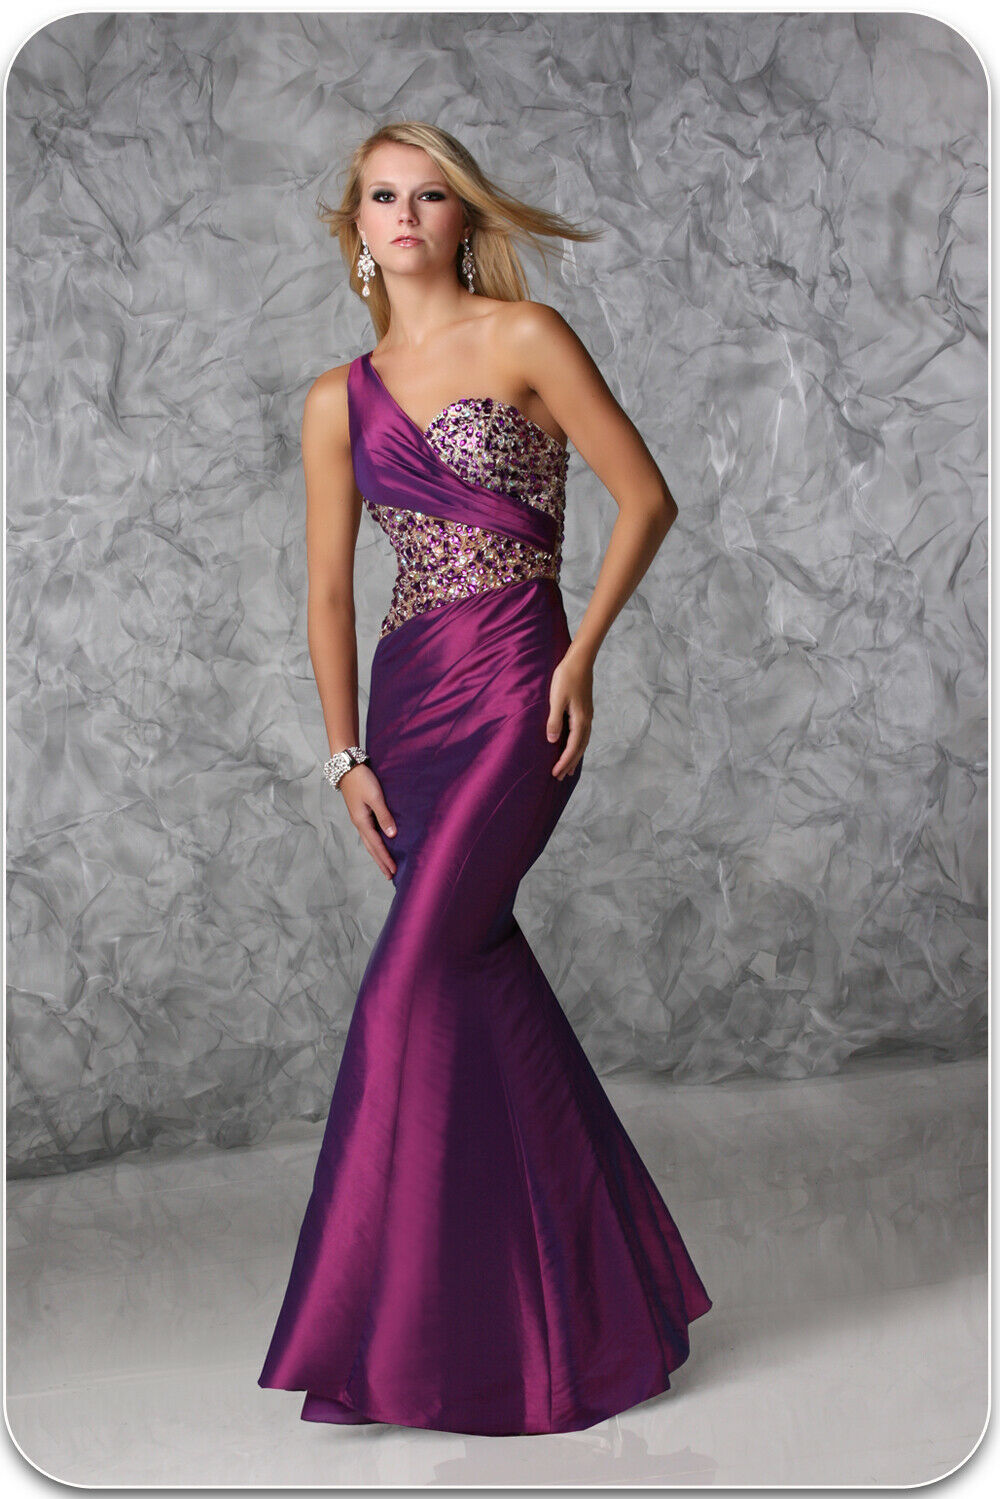 Xcite Taffeta One Shoulder Prom Dress 32367 Purple/Nude